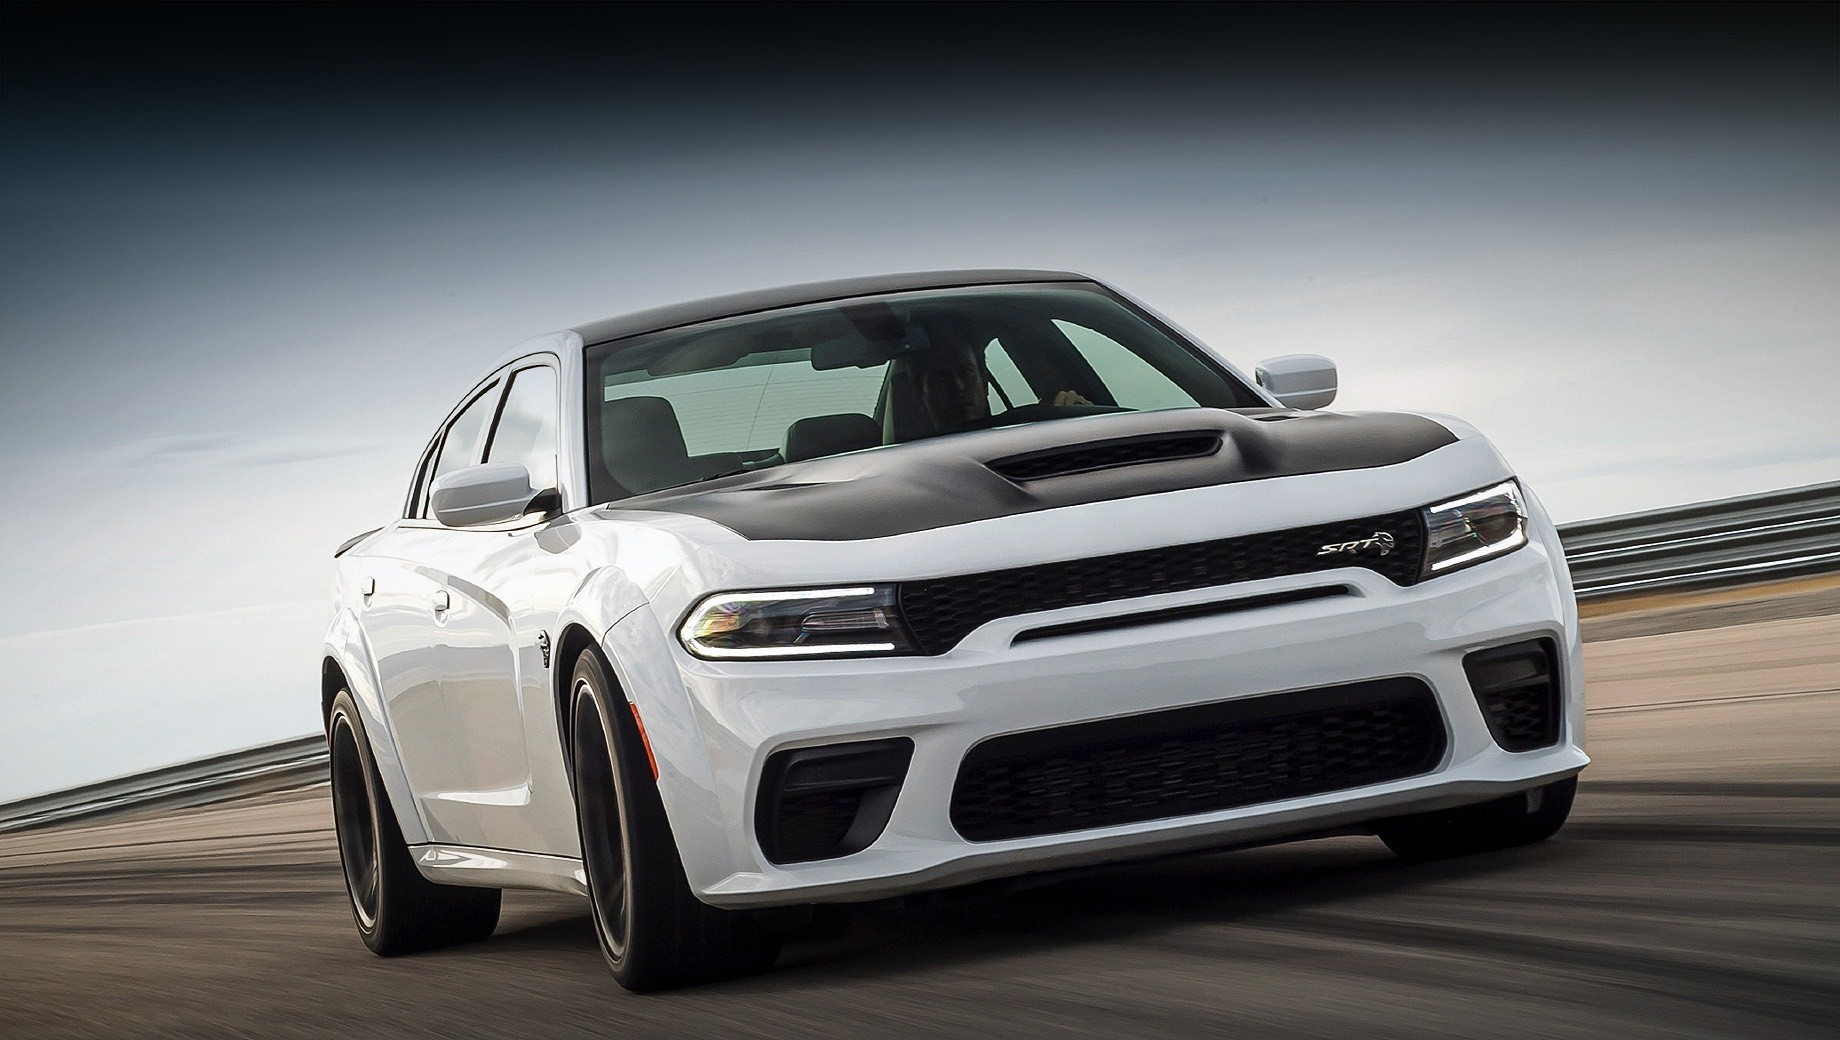 The 2021 Dodge Charger is already out in North America, and while the SRT Hellcat Redeye spec has already been announced, there are other details worth learning about.